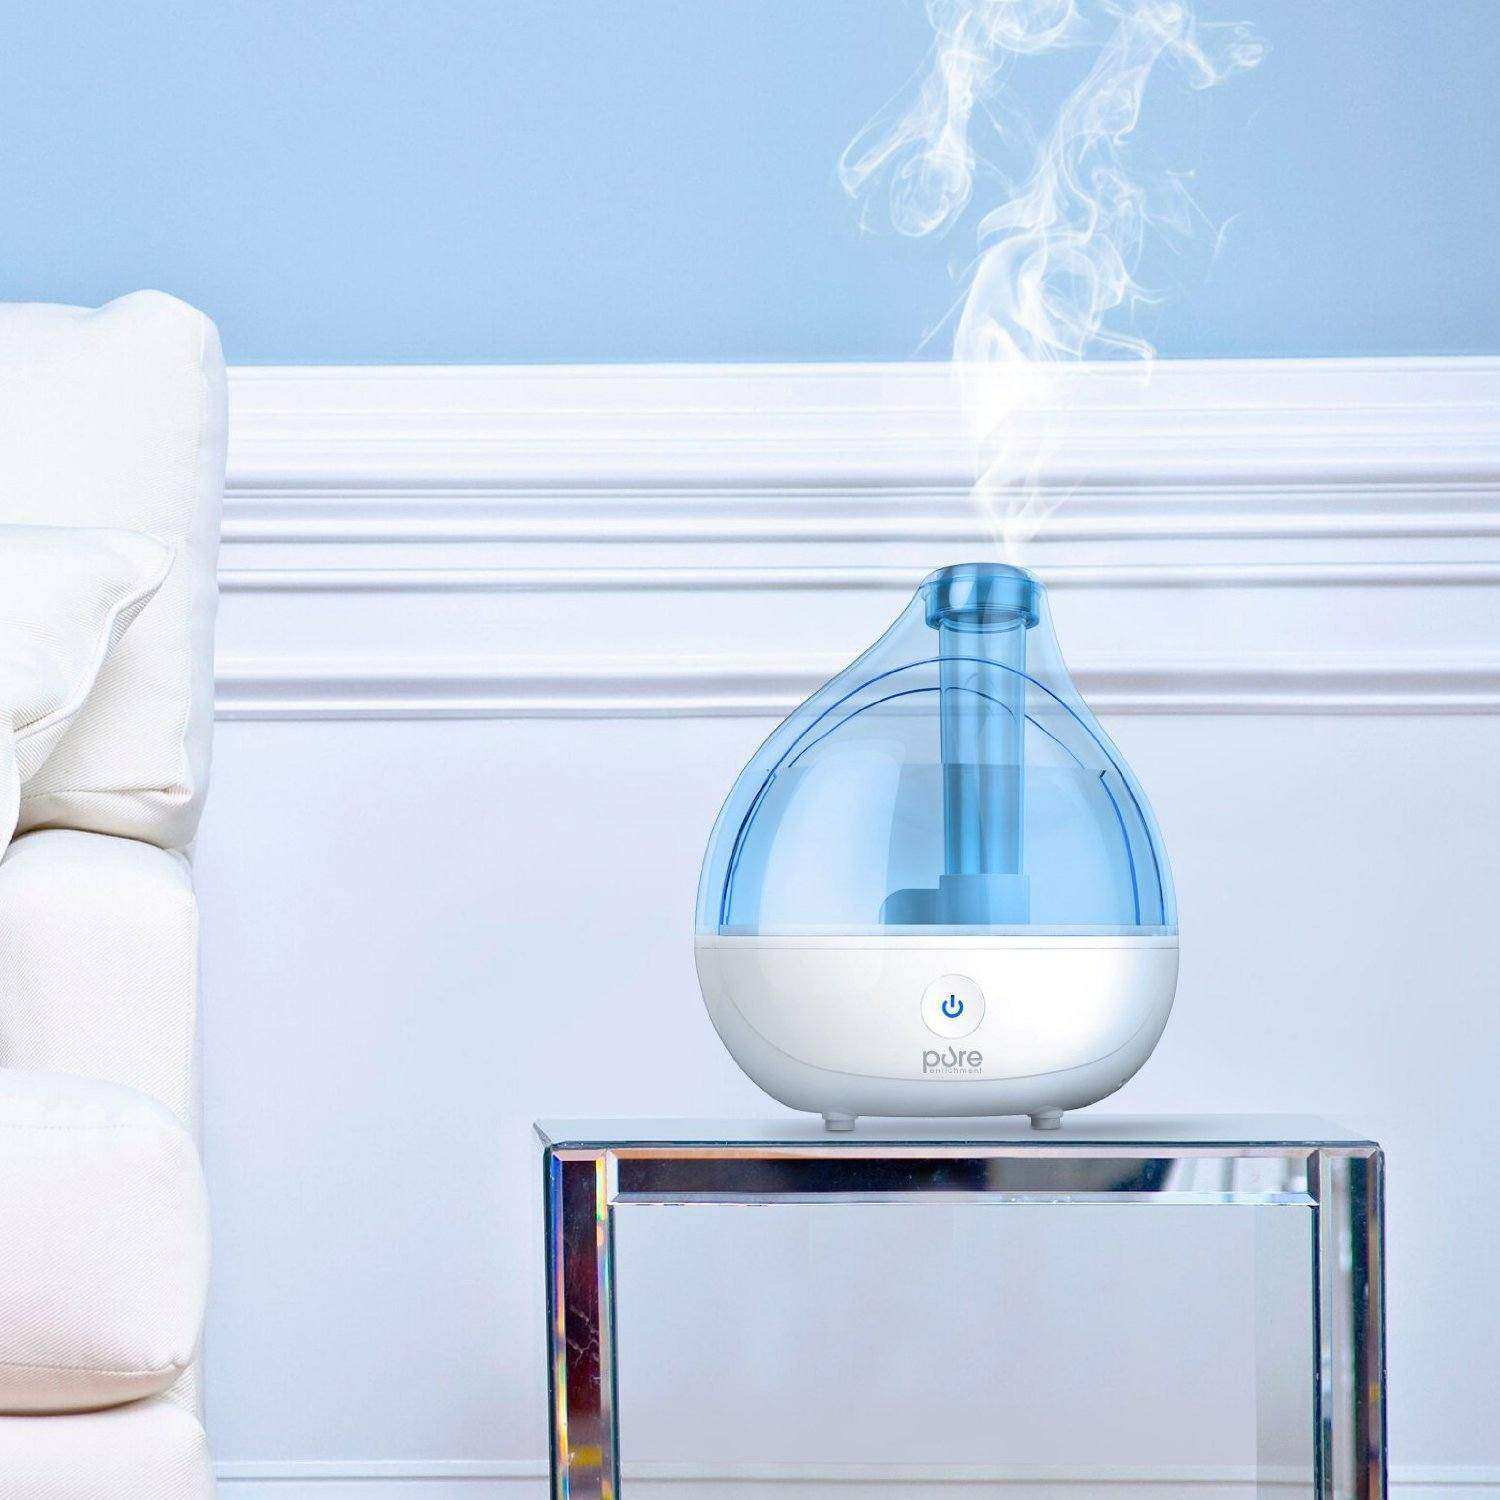 6.-Cool-mist-Humidifier.jpg